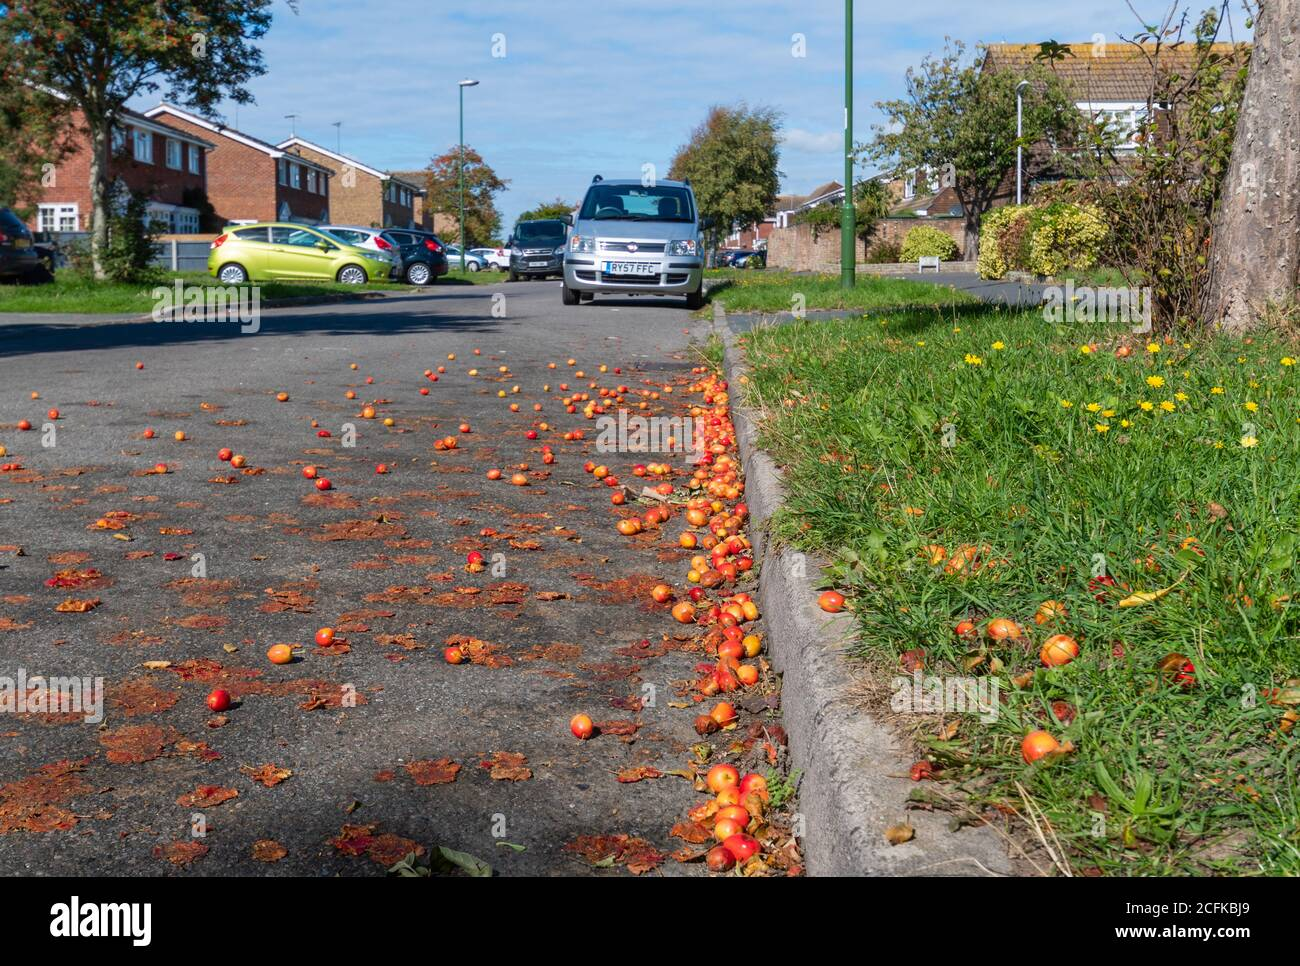 Fruit from Crab Apple (crabapple) tree (Malus sylvestris) fallen from tree & squashed in road in Autumn in West Sussex, England, UK. Crab apples. Stock Photo